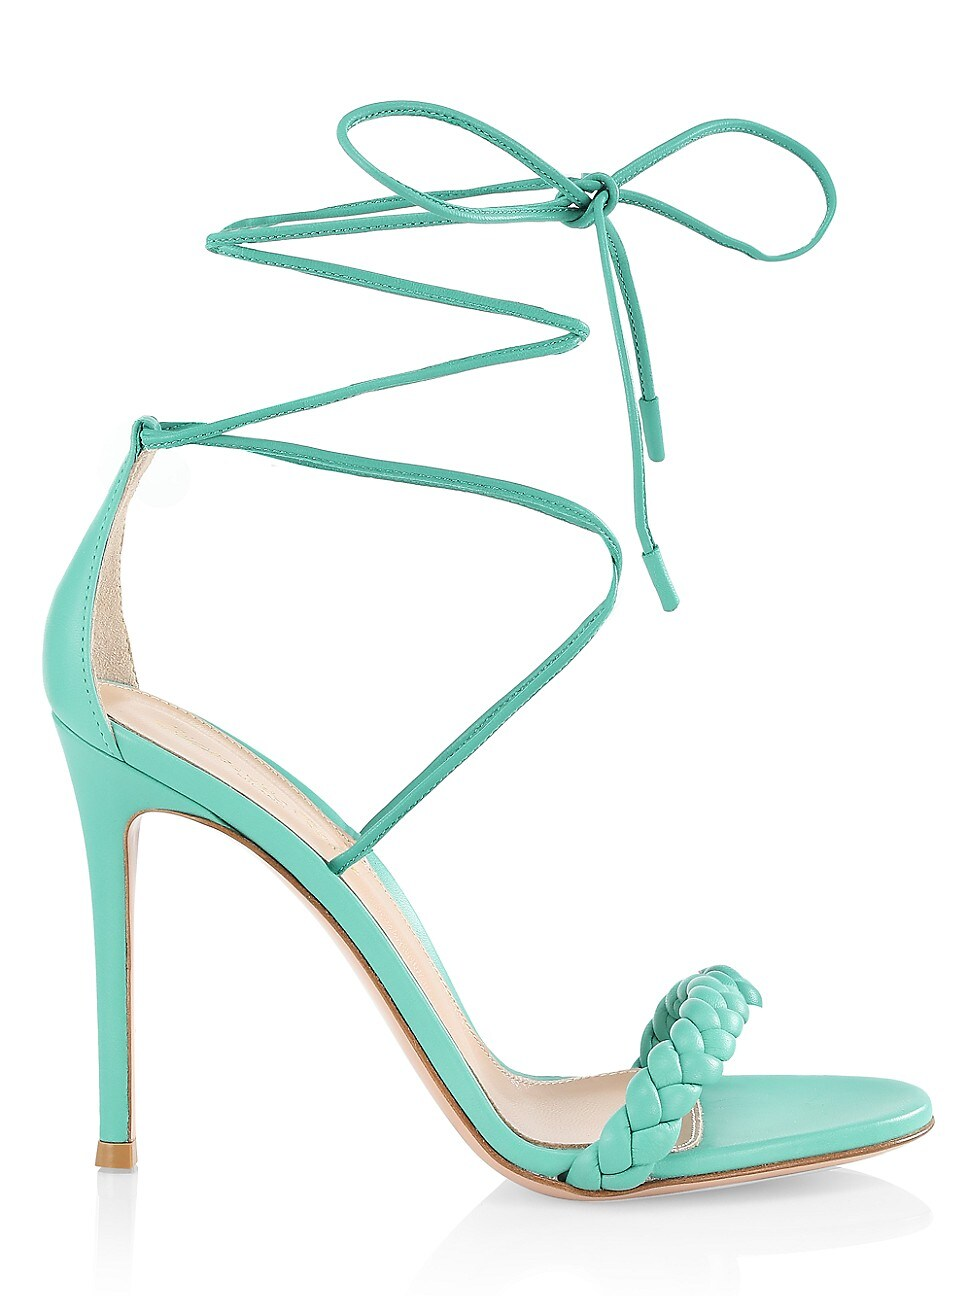 Gianvito Rossi Leathers WOMEN'S LEOMI BRAIDED LEATHER SANDALS